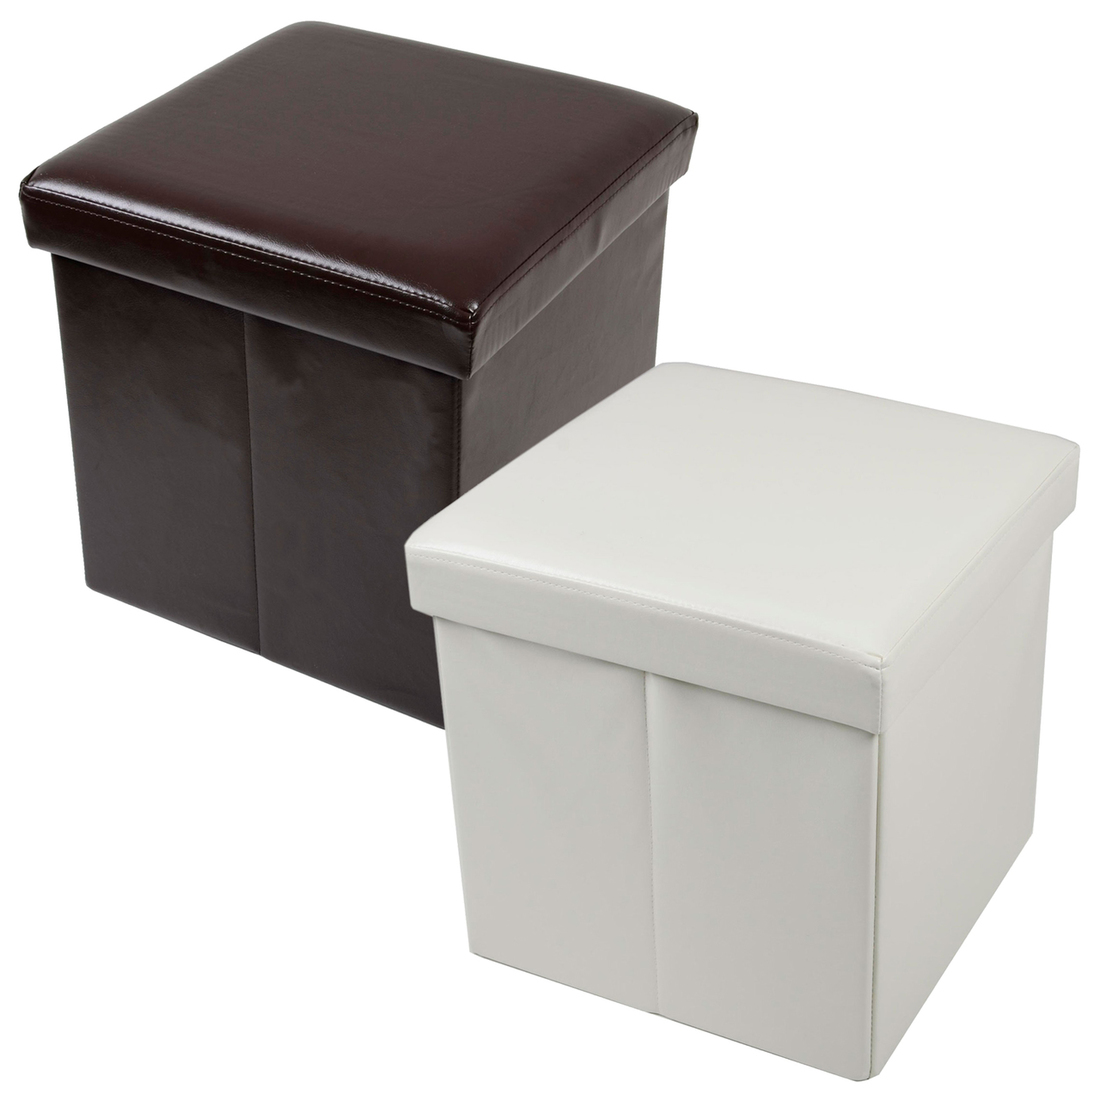 Leather Cube Ottoman | Storage Cube Ottoman | Storage Ottomans for Sale